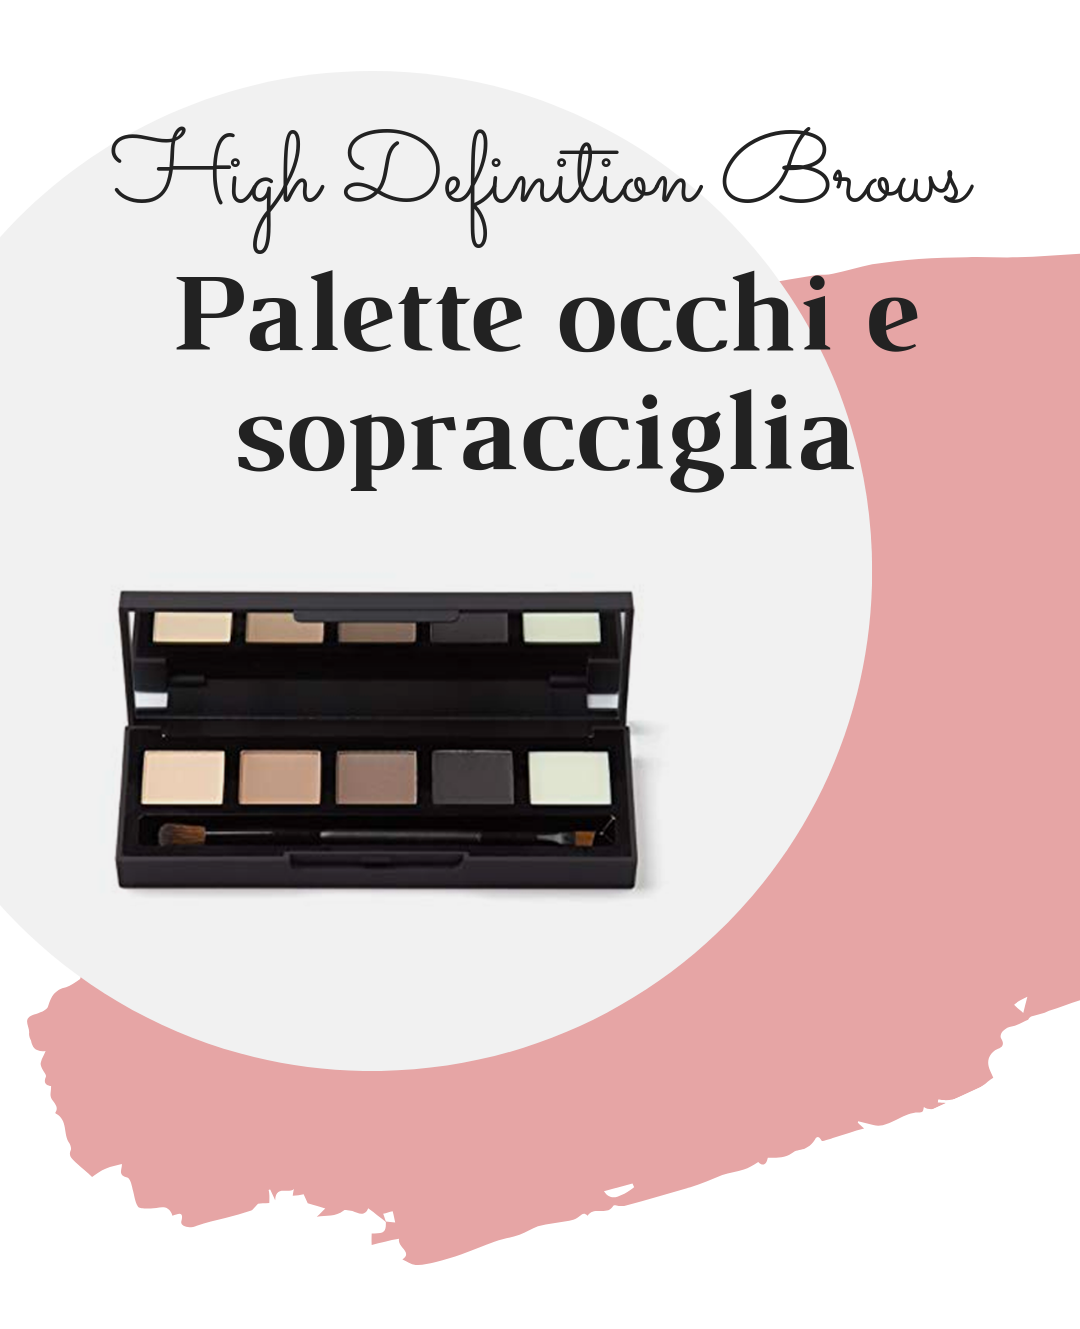 High Definition Brows Palette occhi e sopracciglia